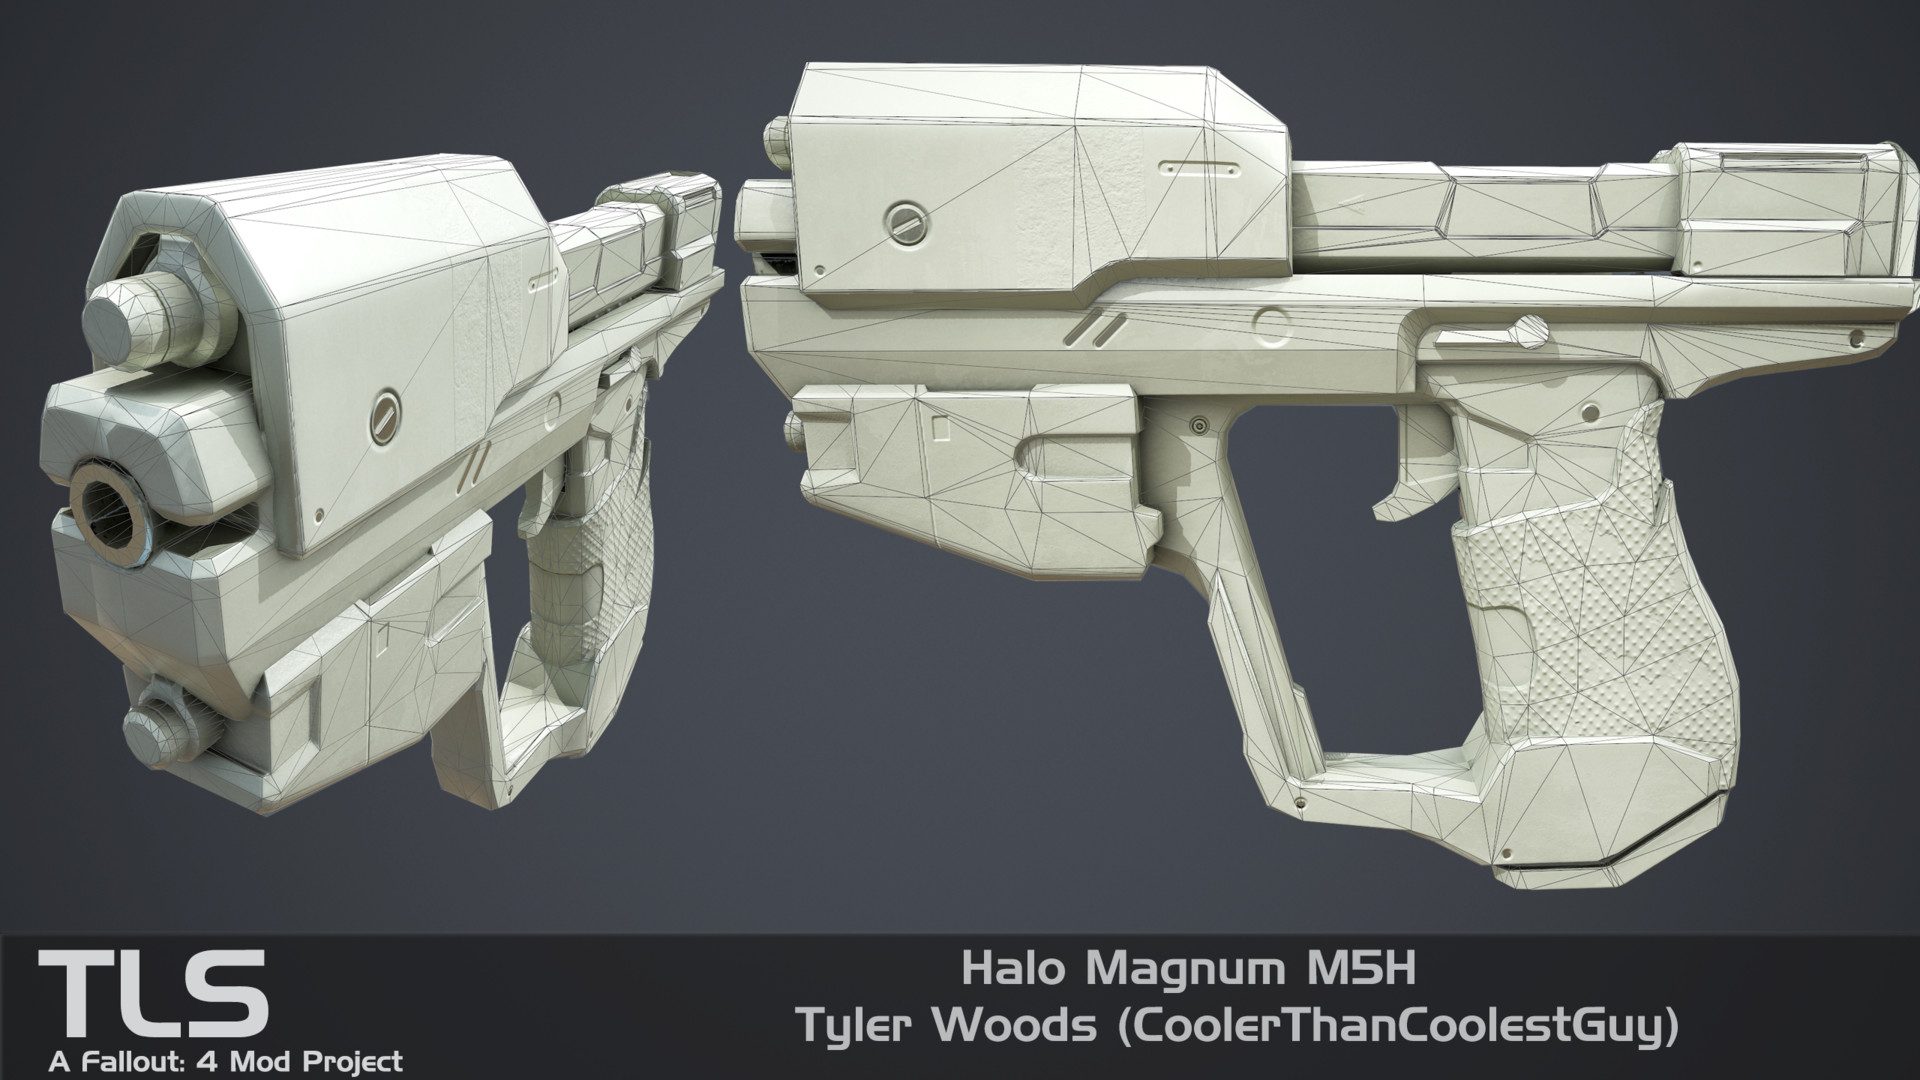 ArtStation - The Last Spartan - Halo Magnum M5H, Tyler Woods